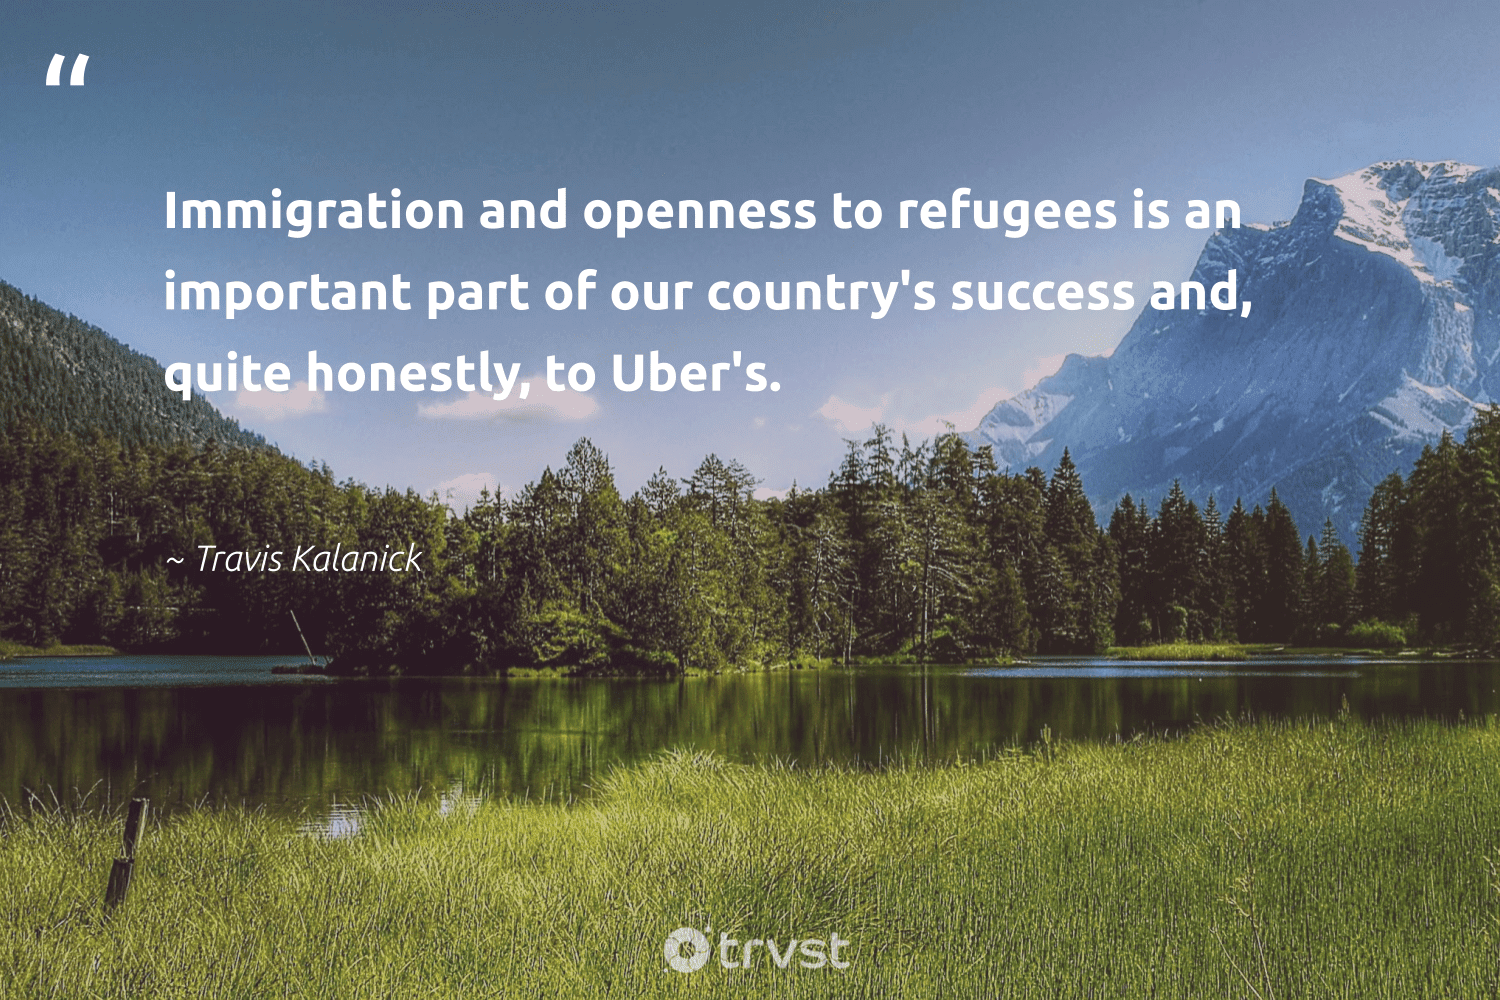 """""""Immigration and openness to refugees is an important part of our country's success and, quite honestly, to Uber's.""""  - Travis Kalanick #trvst #quotes #refugees #success #refugeeswelcome #dogood #equalrights #collectiveaction #refugee #sustainable #weareallone #impact"""